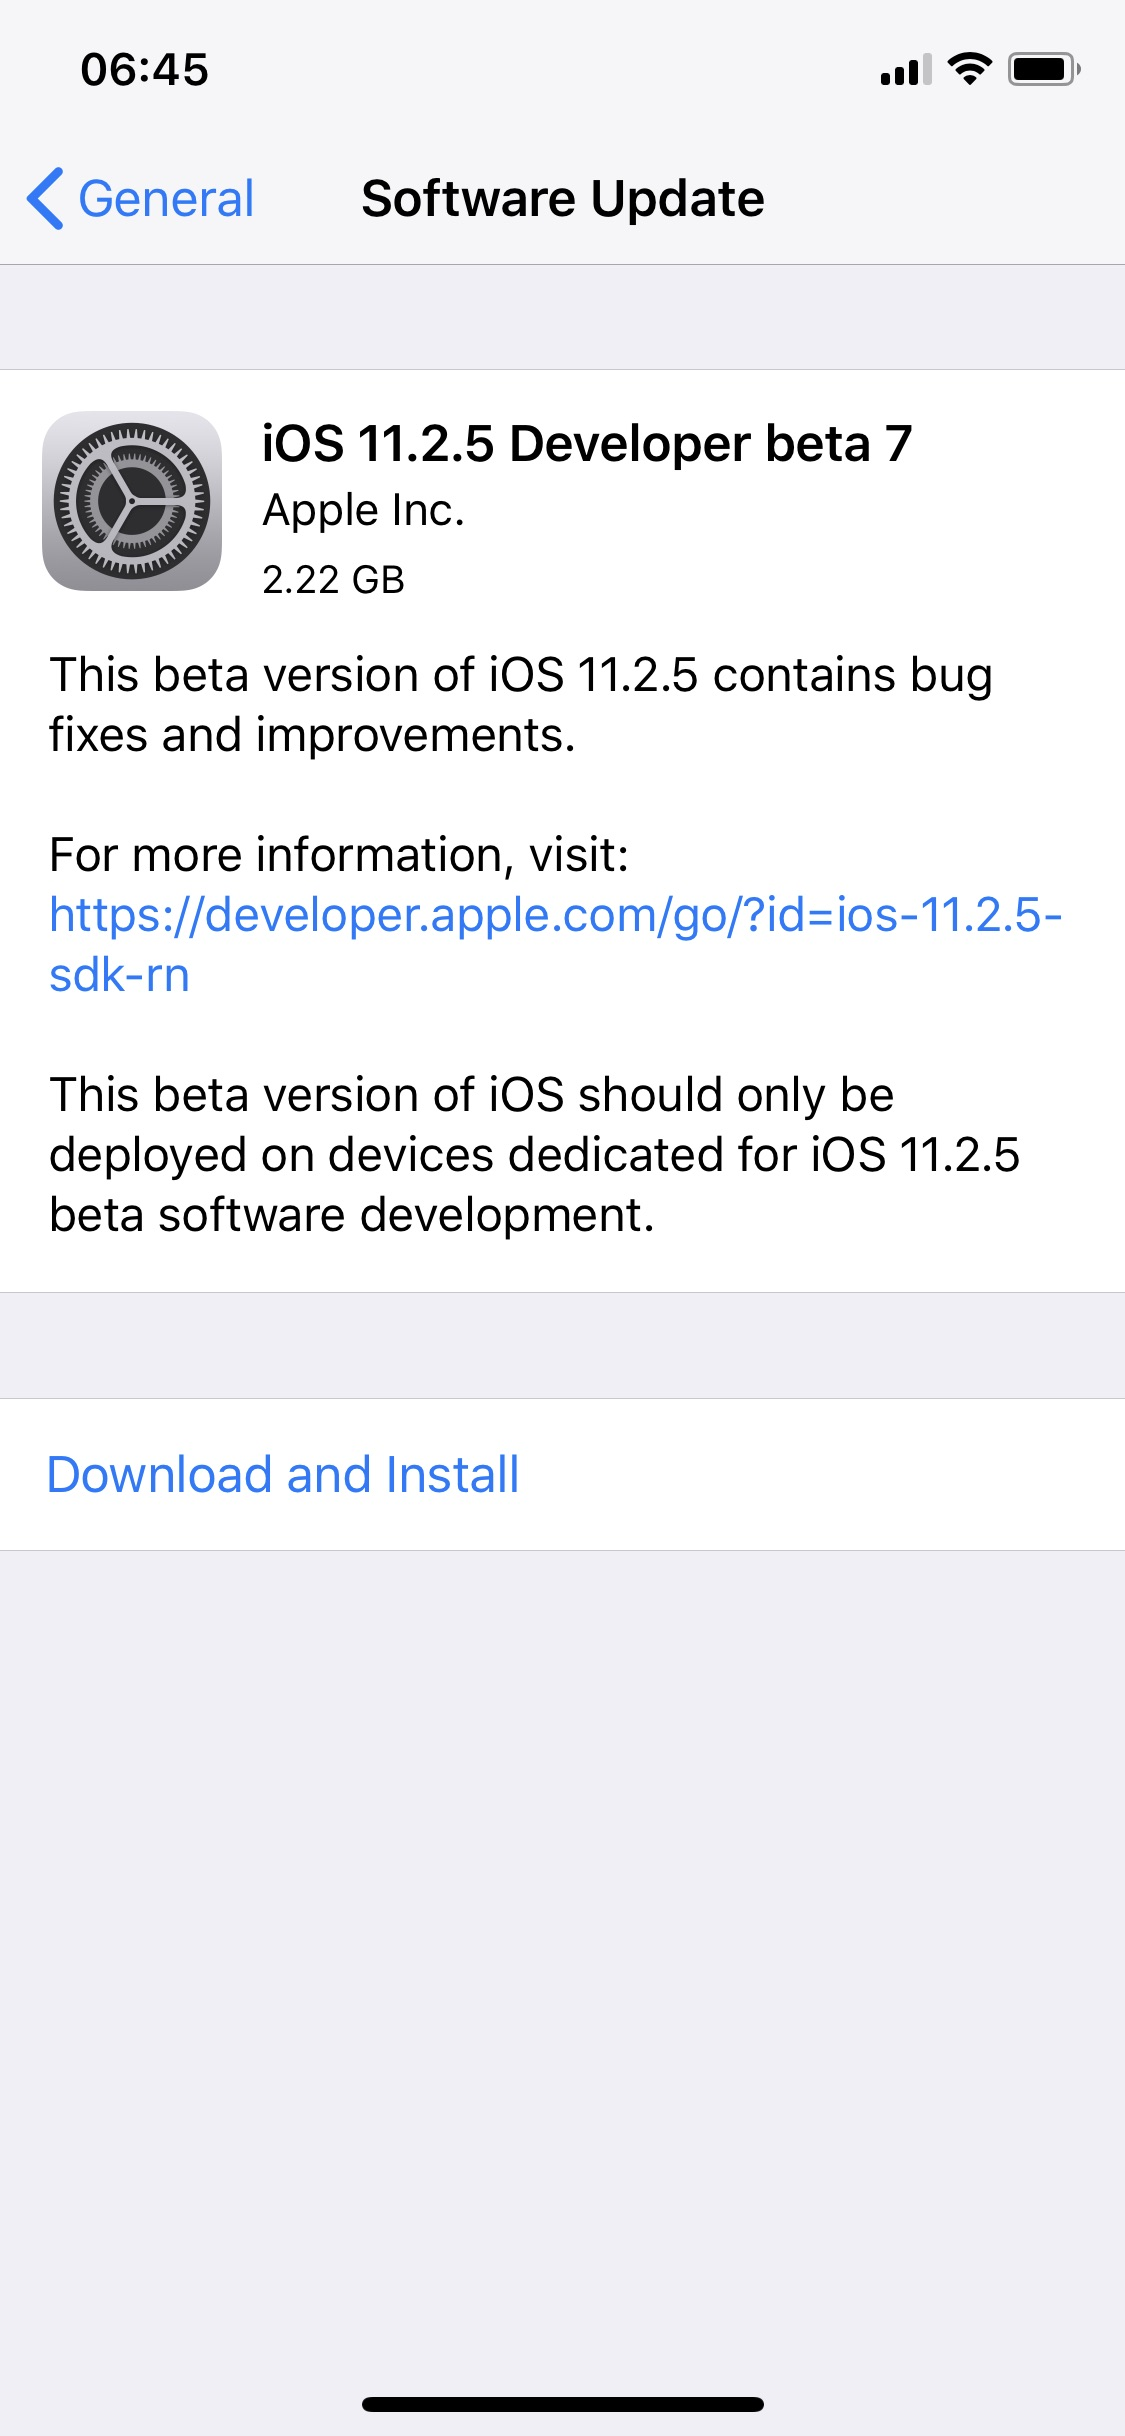 Ios 11 2 5 Beta 7 Gm 1